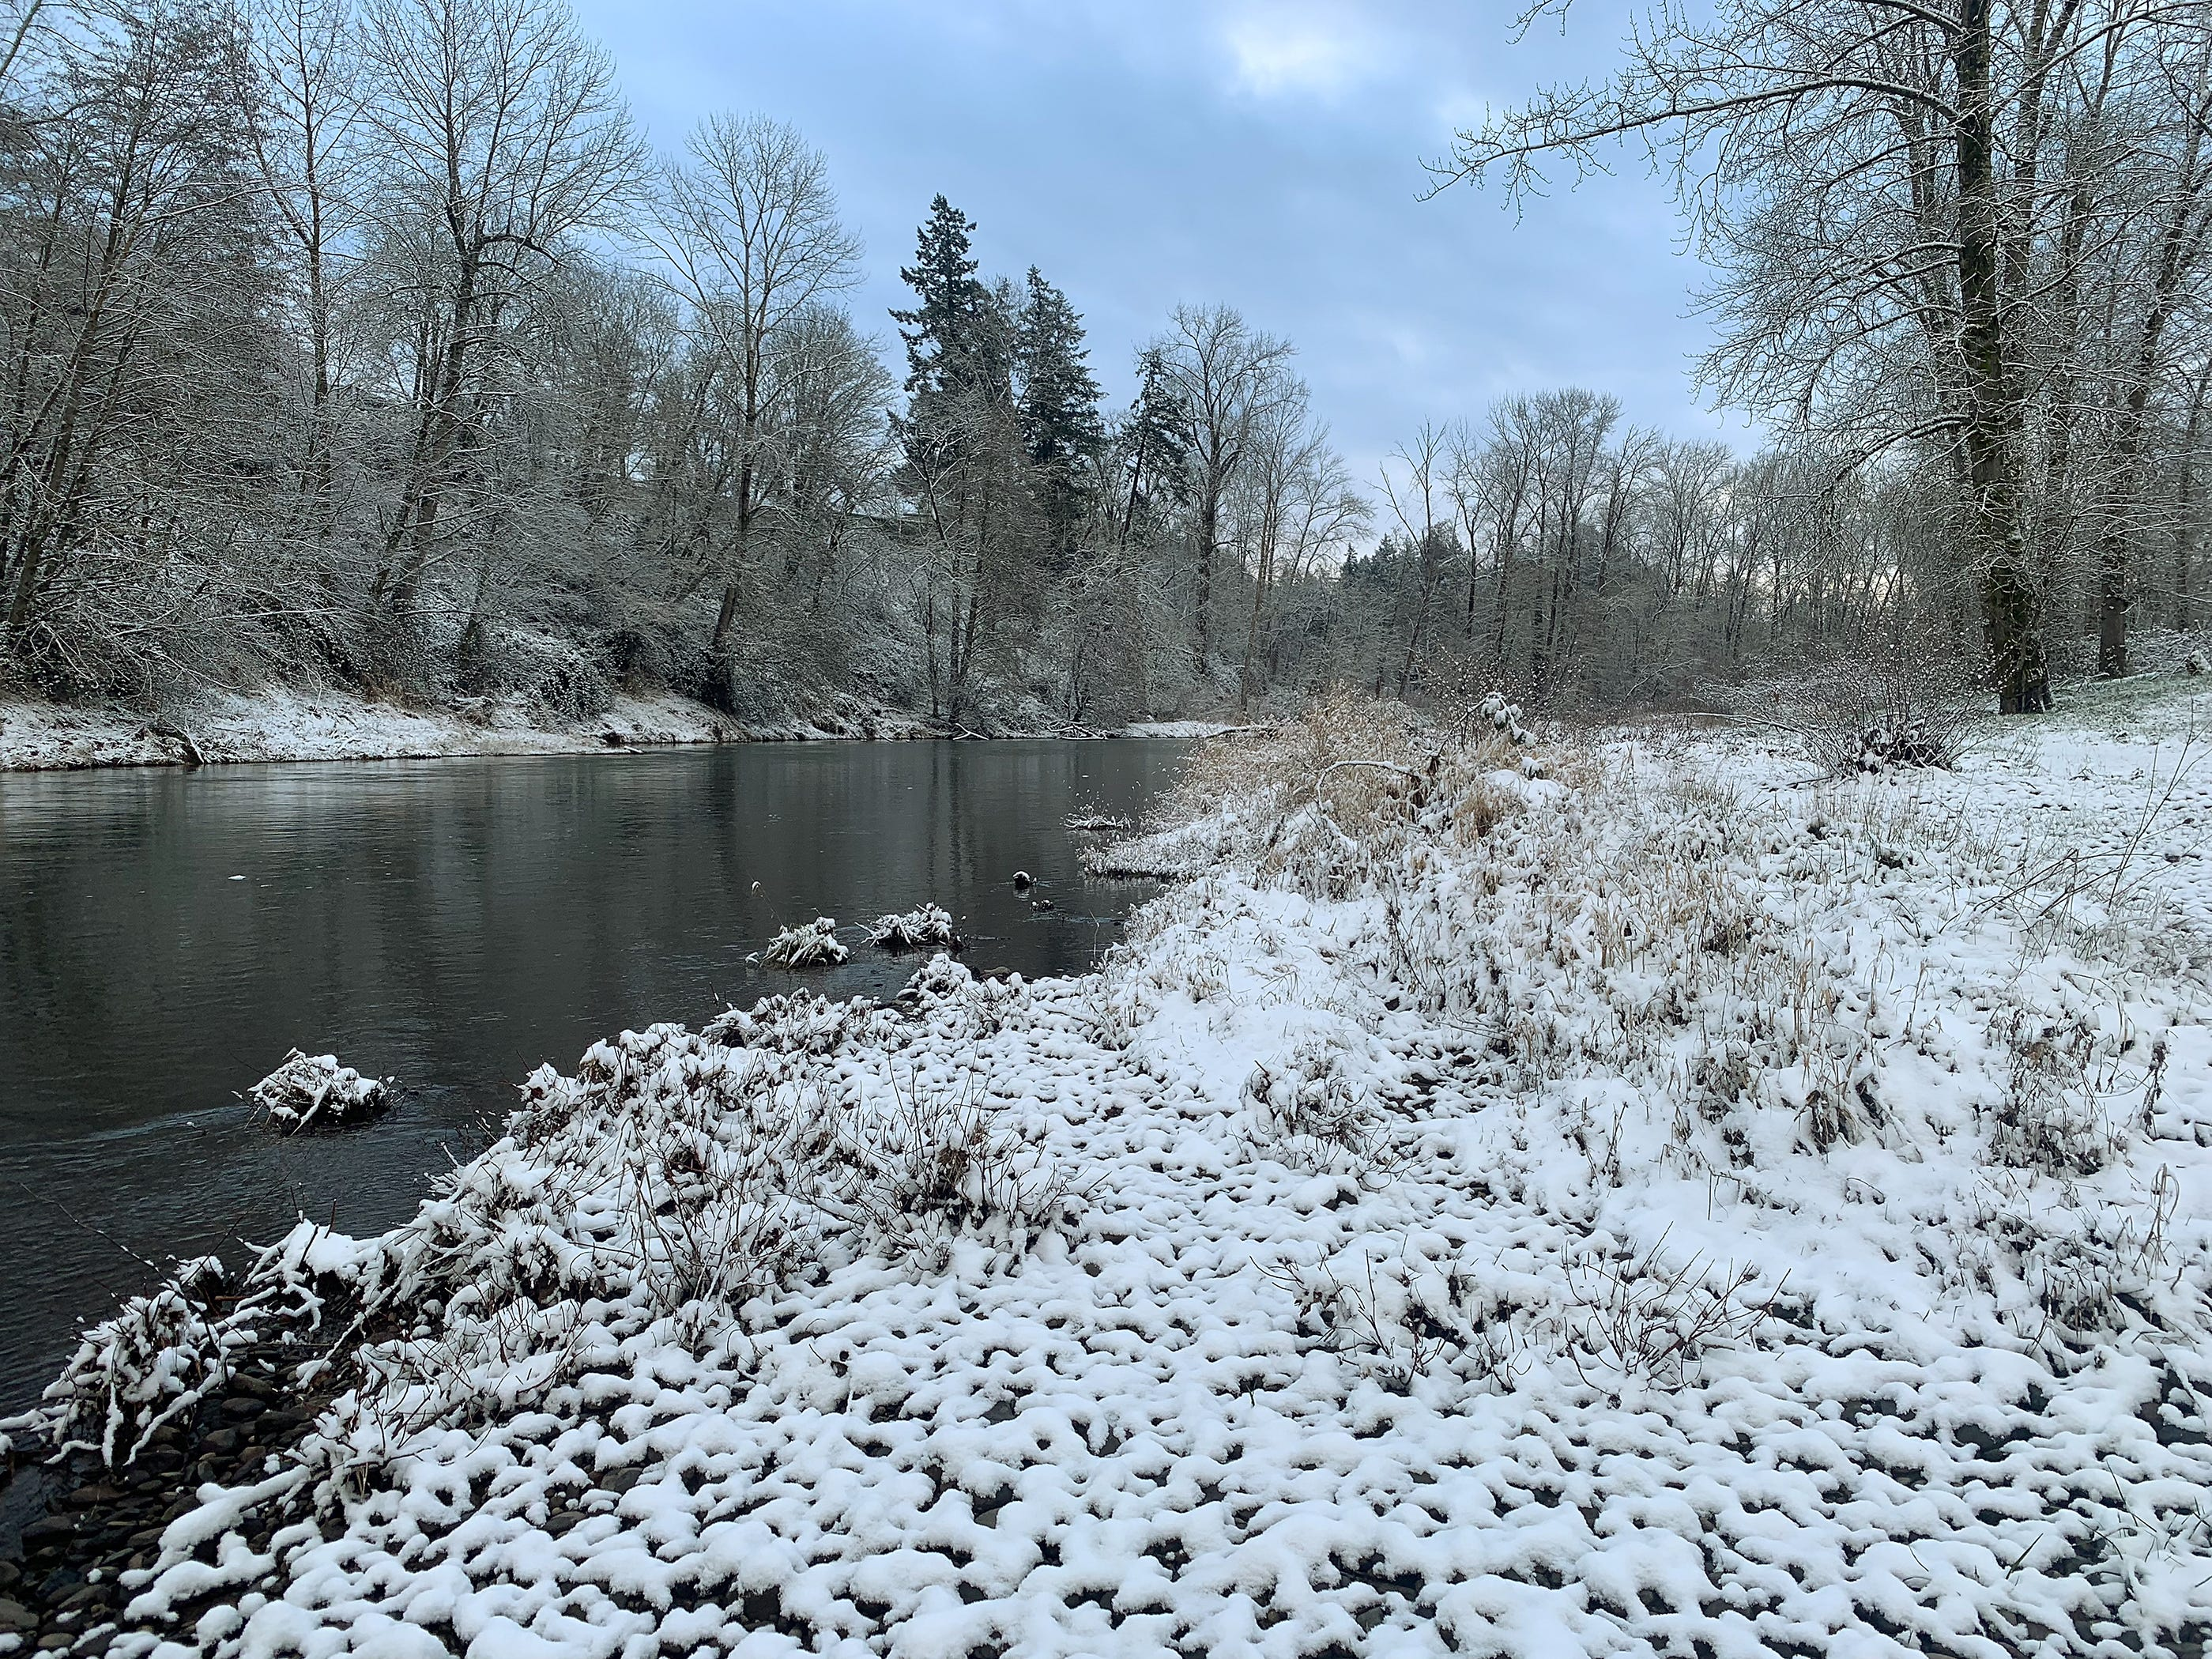 Snow covers much of the mid-Willamette valley and along the Molalla River Tuesday morning. Snow covered cars, trees and yard ornaments greeted residents of Canby, Oregon Tuesday February 5, 2019.